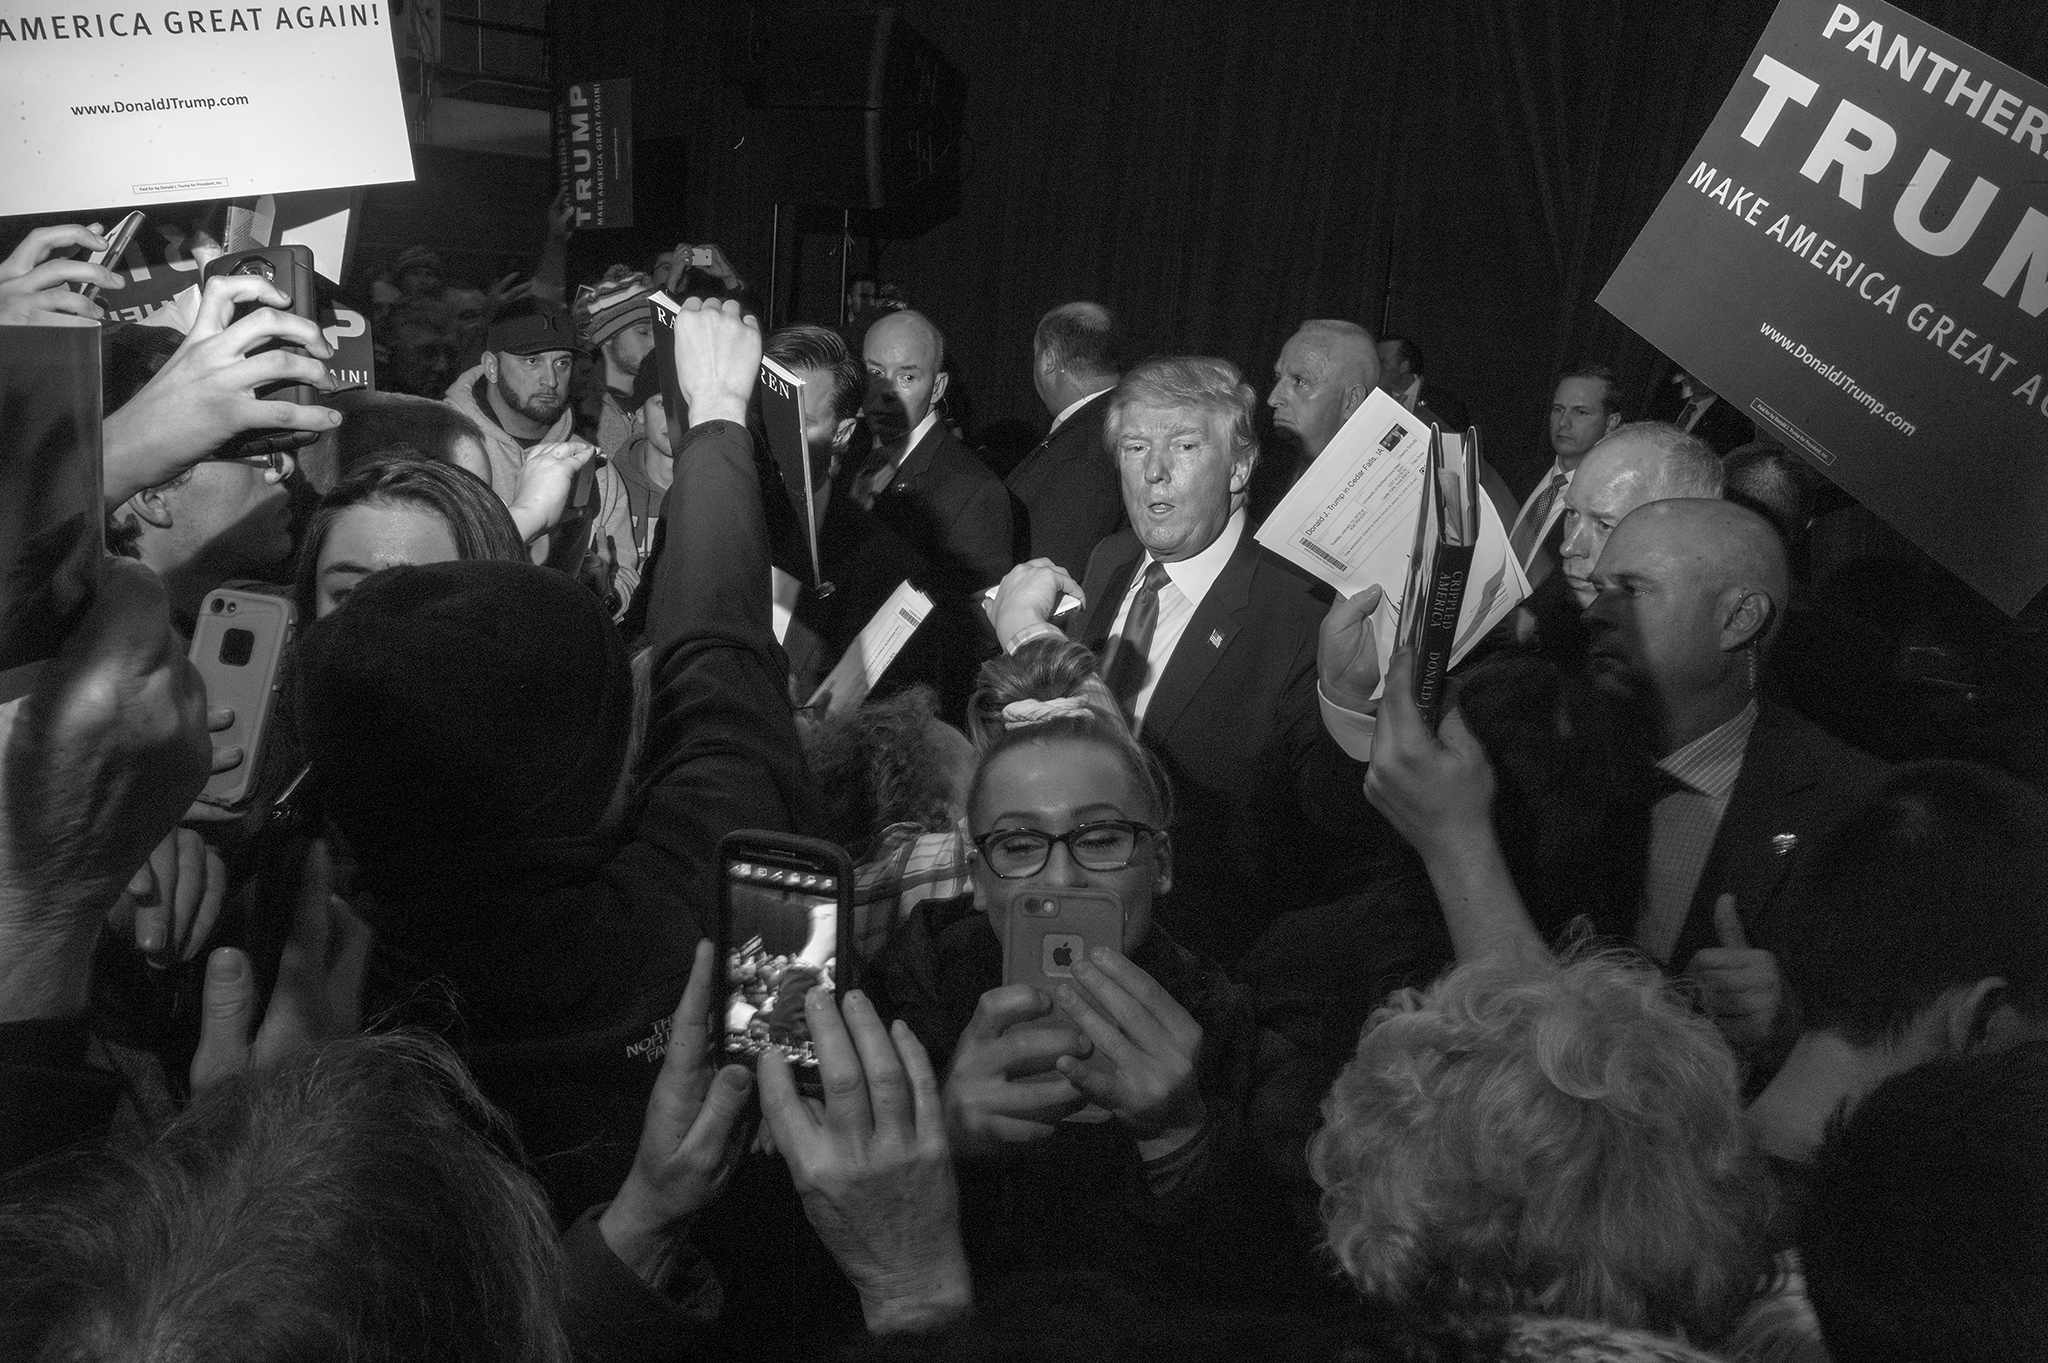 Supporters push and shove to get closer to Donald Trump after his rally at the University of Northern Iowa on Tuesday night.